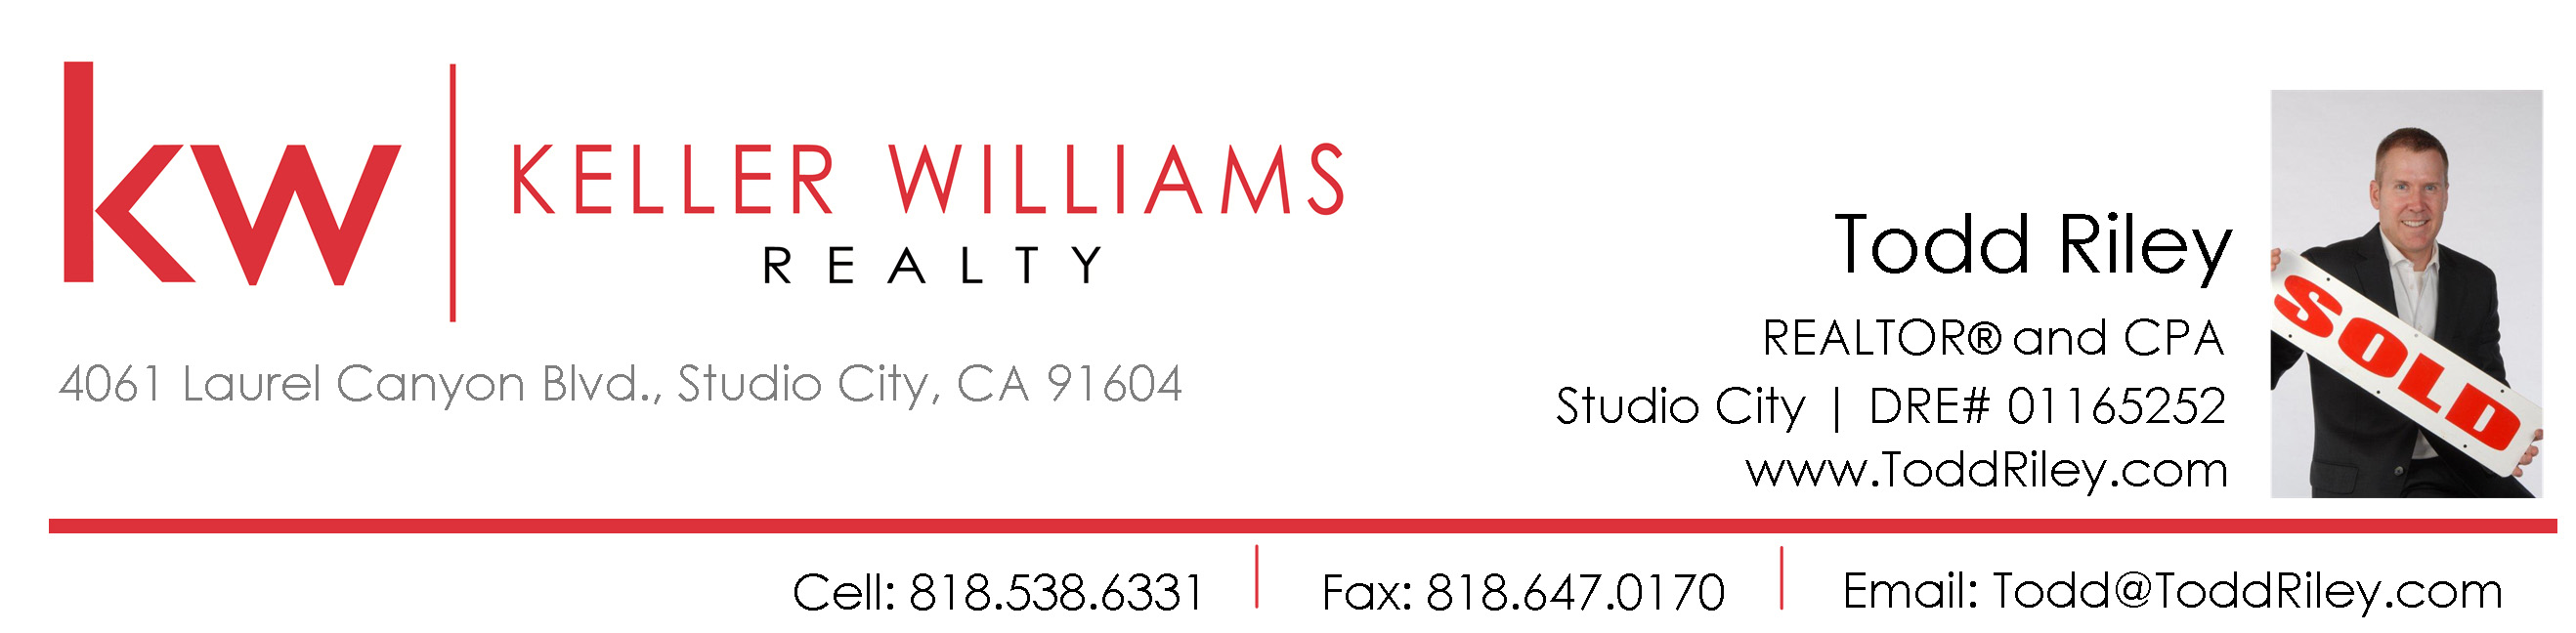 Todd Riley - Agoura Hills Real Estate Agent